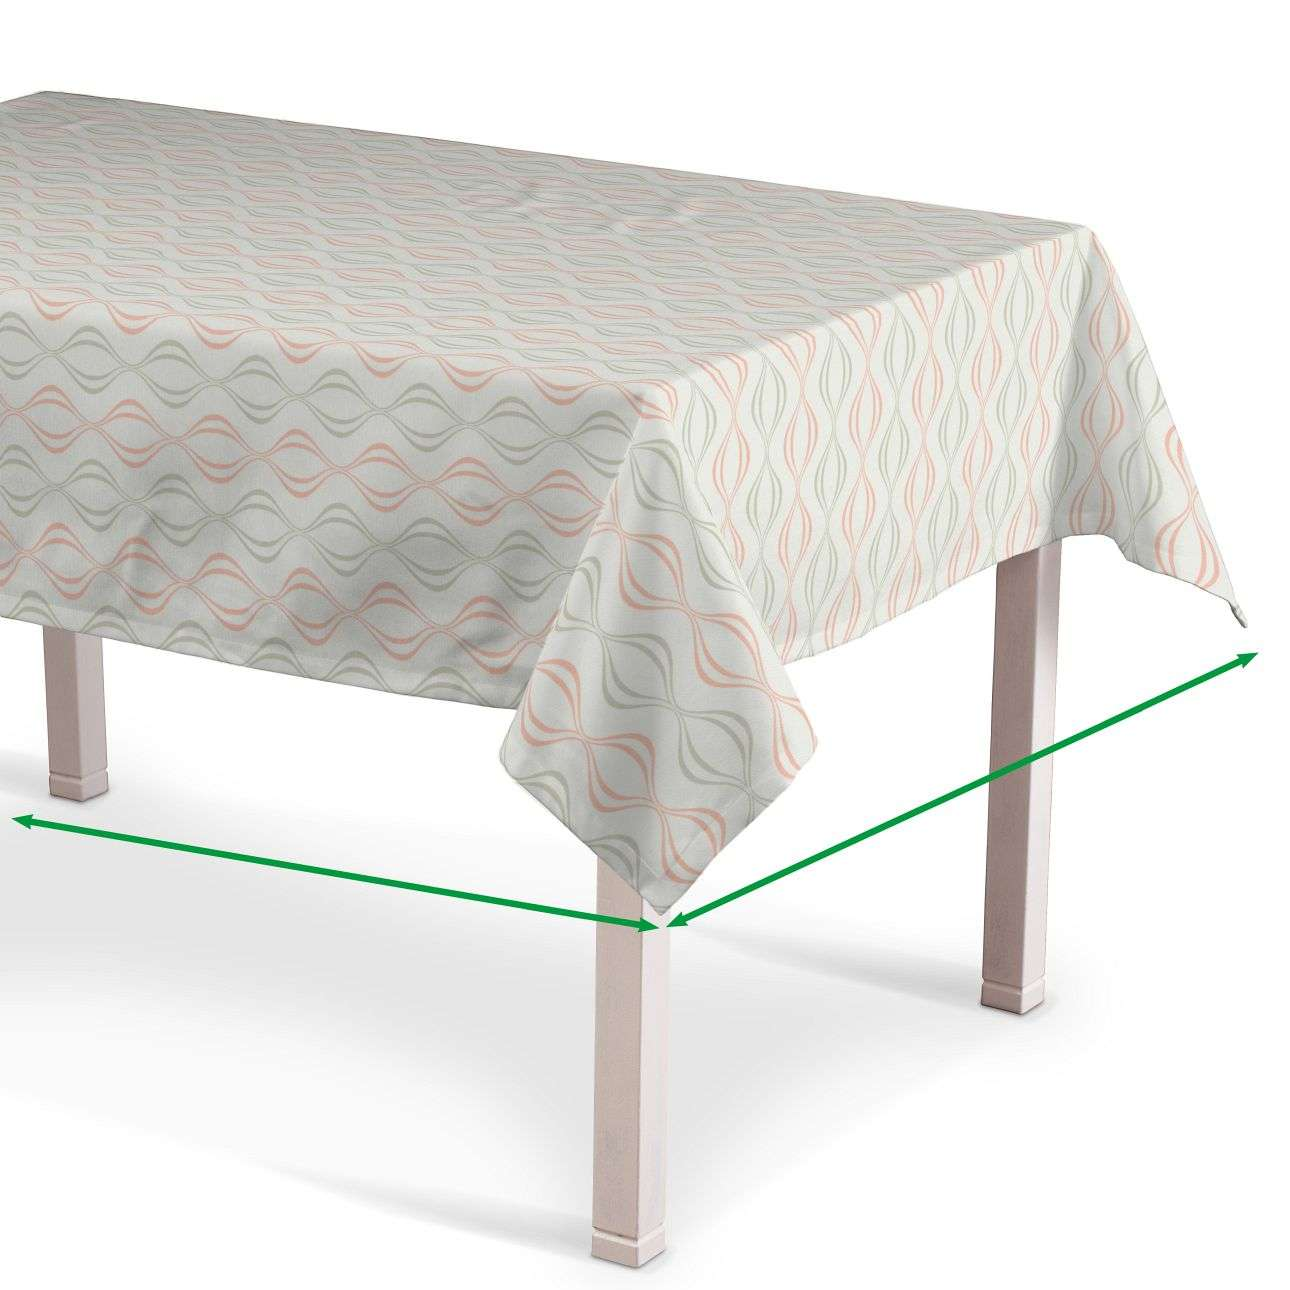 Rectangular tablecloth in collection SALE, fabric: 141-49